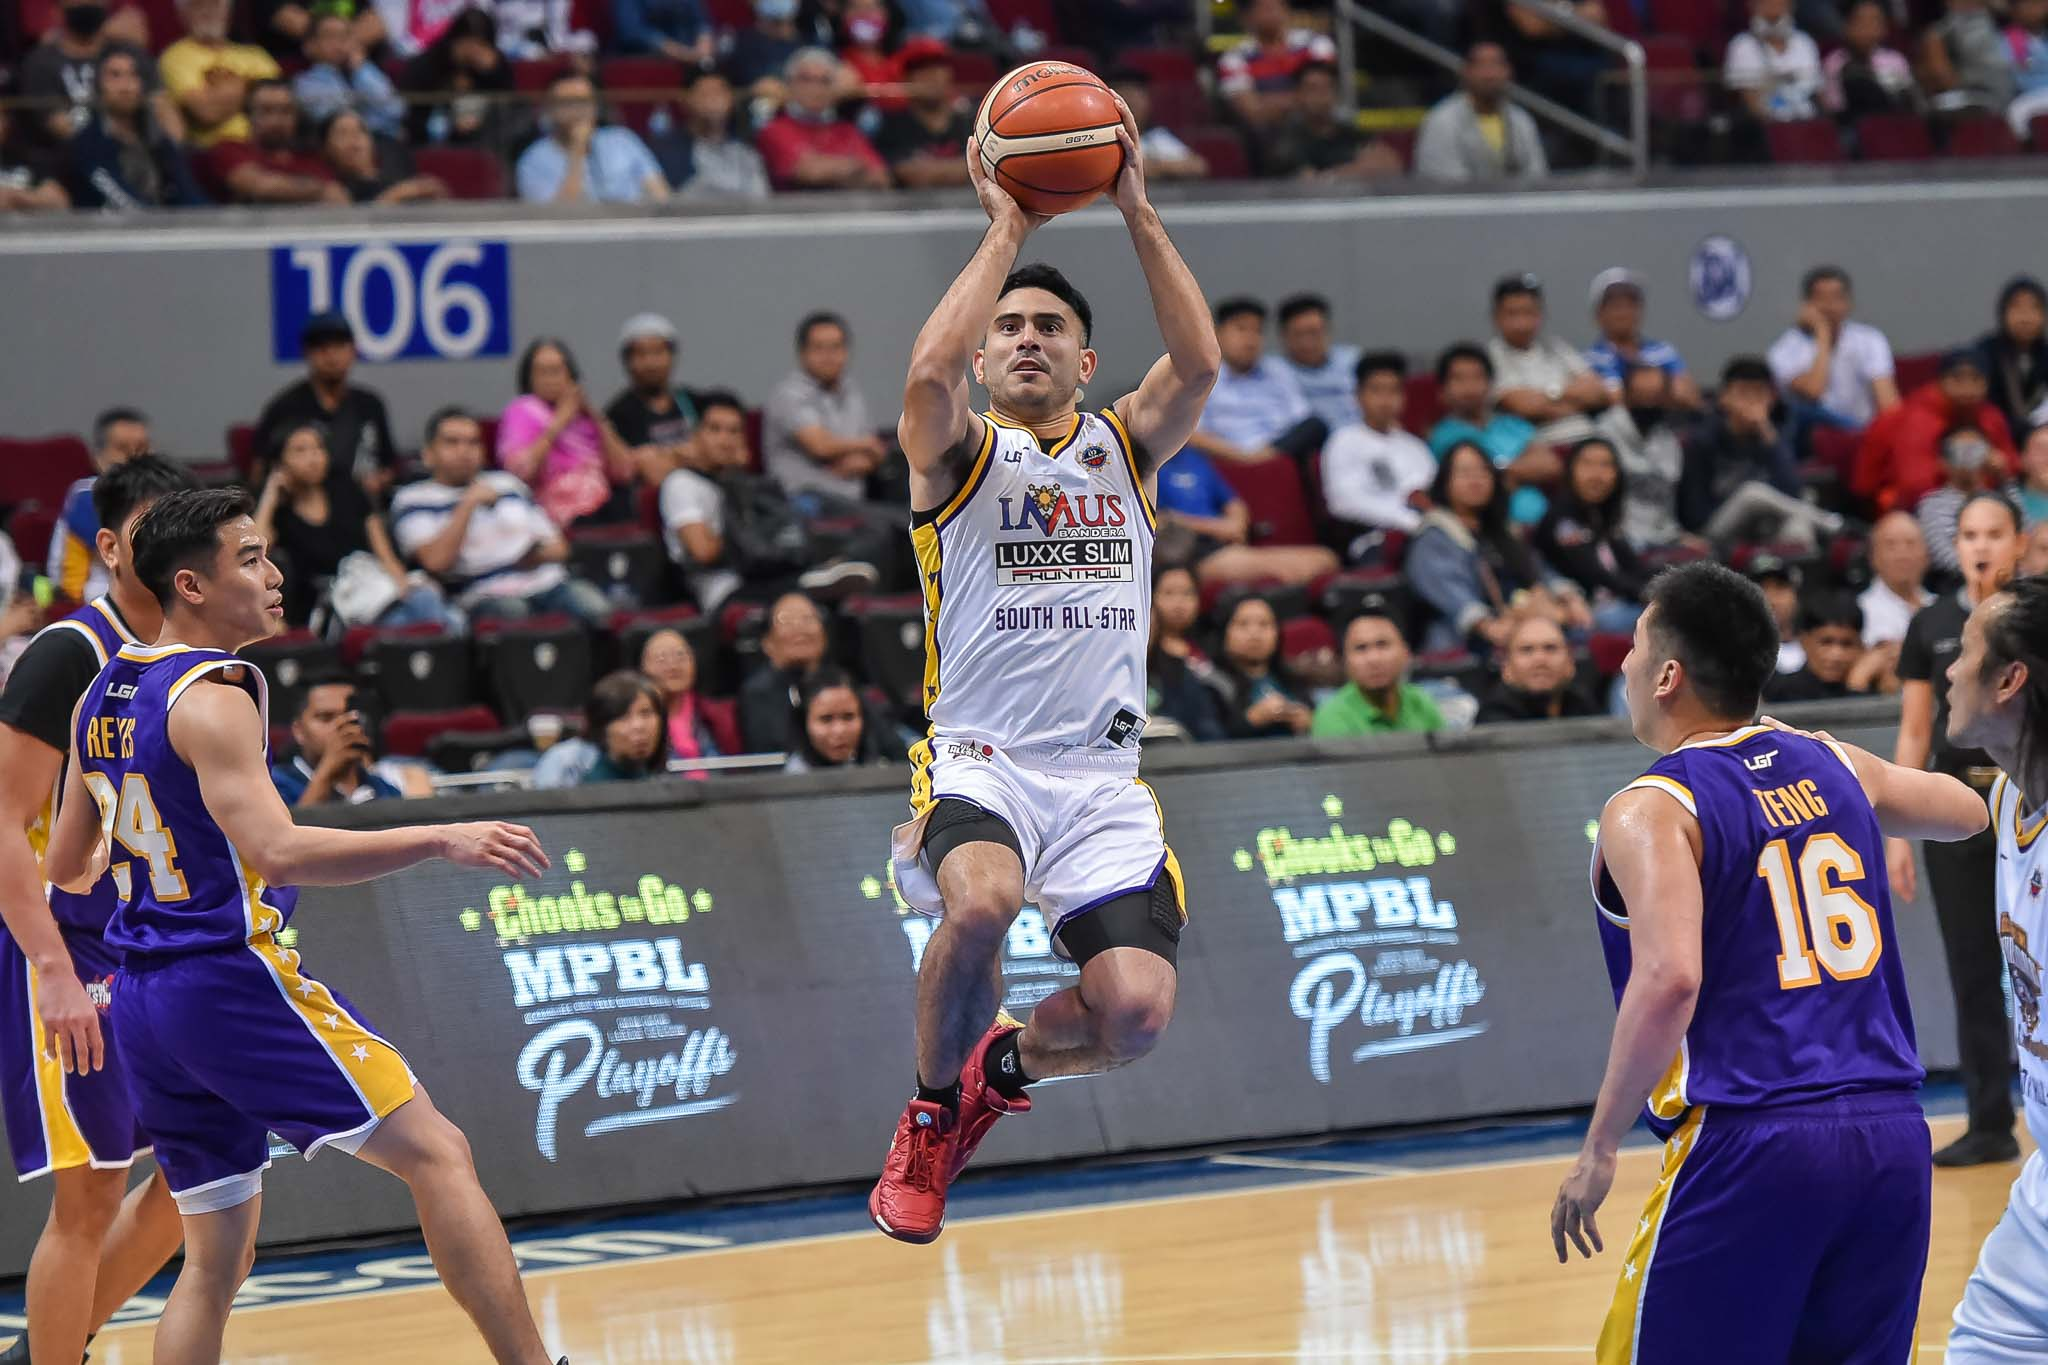 Tiebreaker Times Despite jersey no. mishap, Gerald Anderson hopes advocacy gets across Basketball MPBL News  Imus Bandera Gerald Anderson 2020 MPBL All-Star Game 2019-20 MPBL Lakan Cup